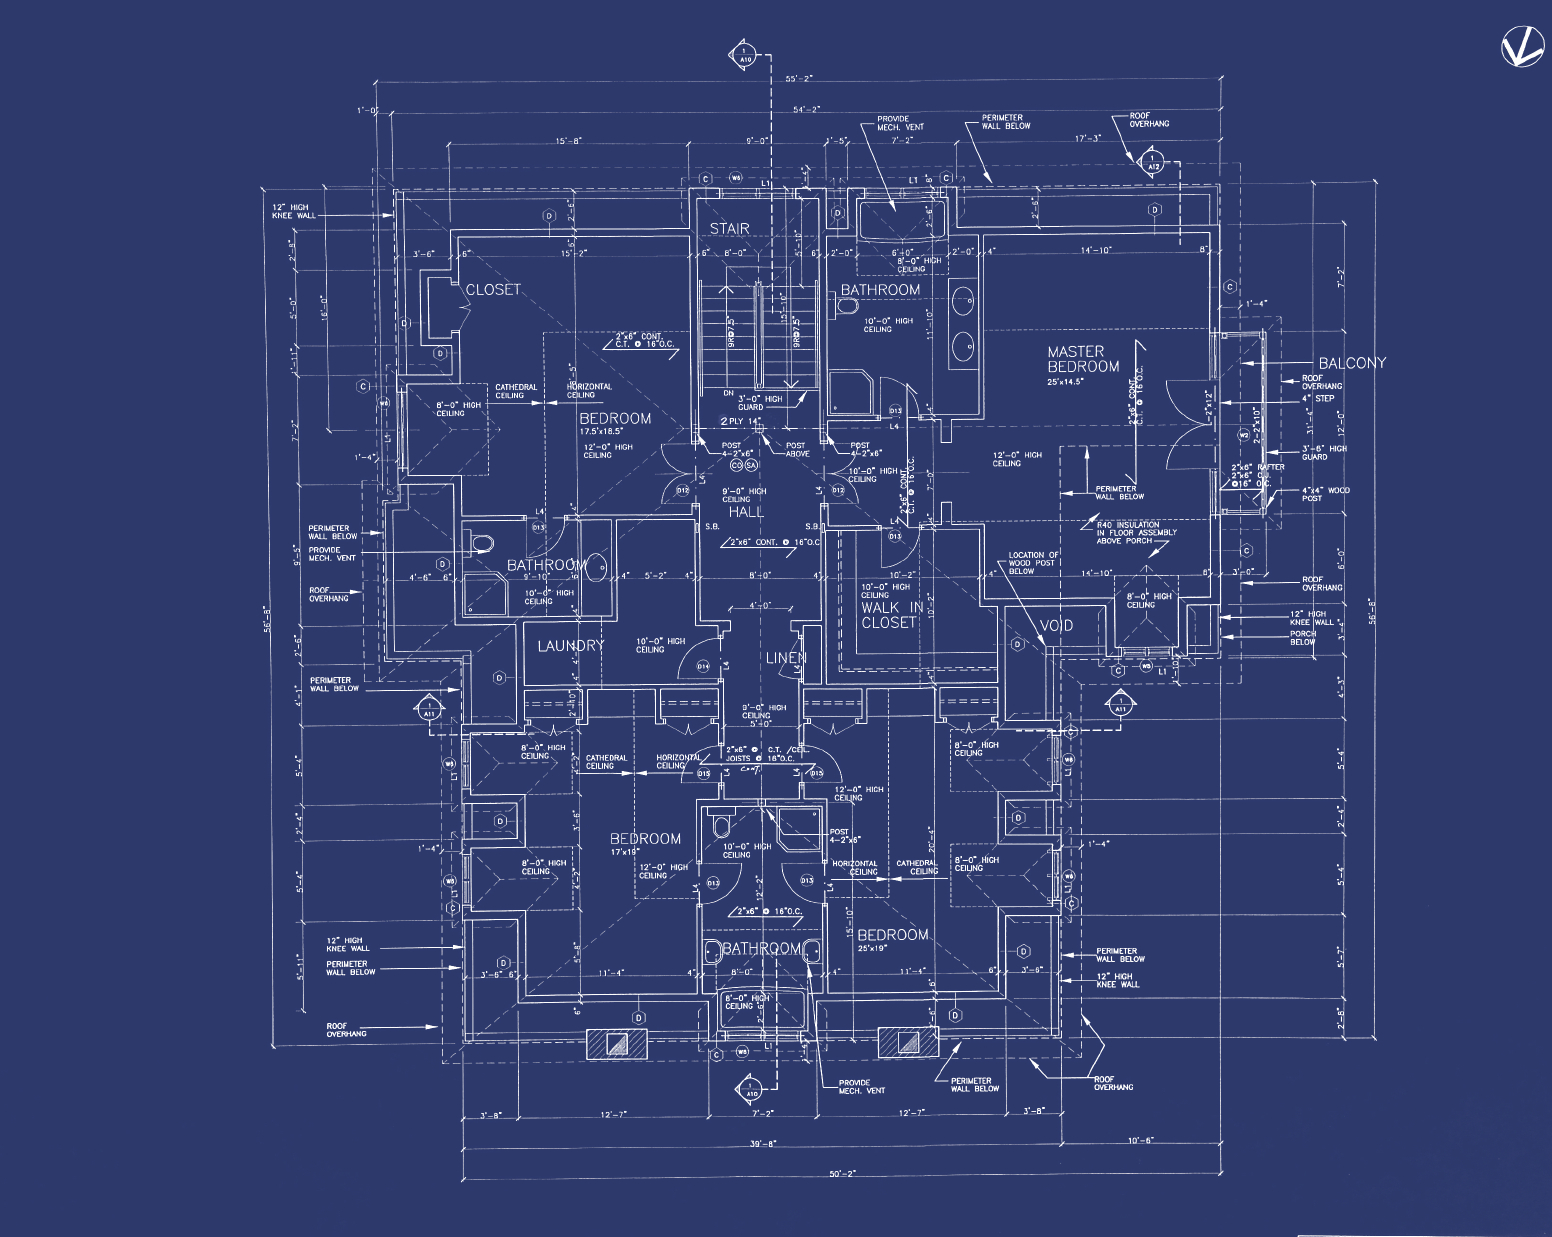 The blueprint urban samurai Blueprints of houses to build